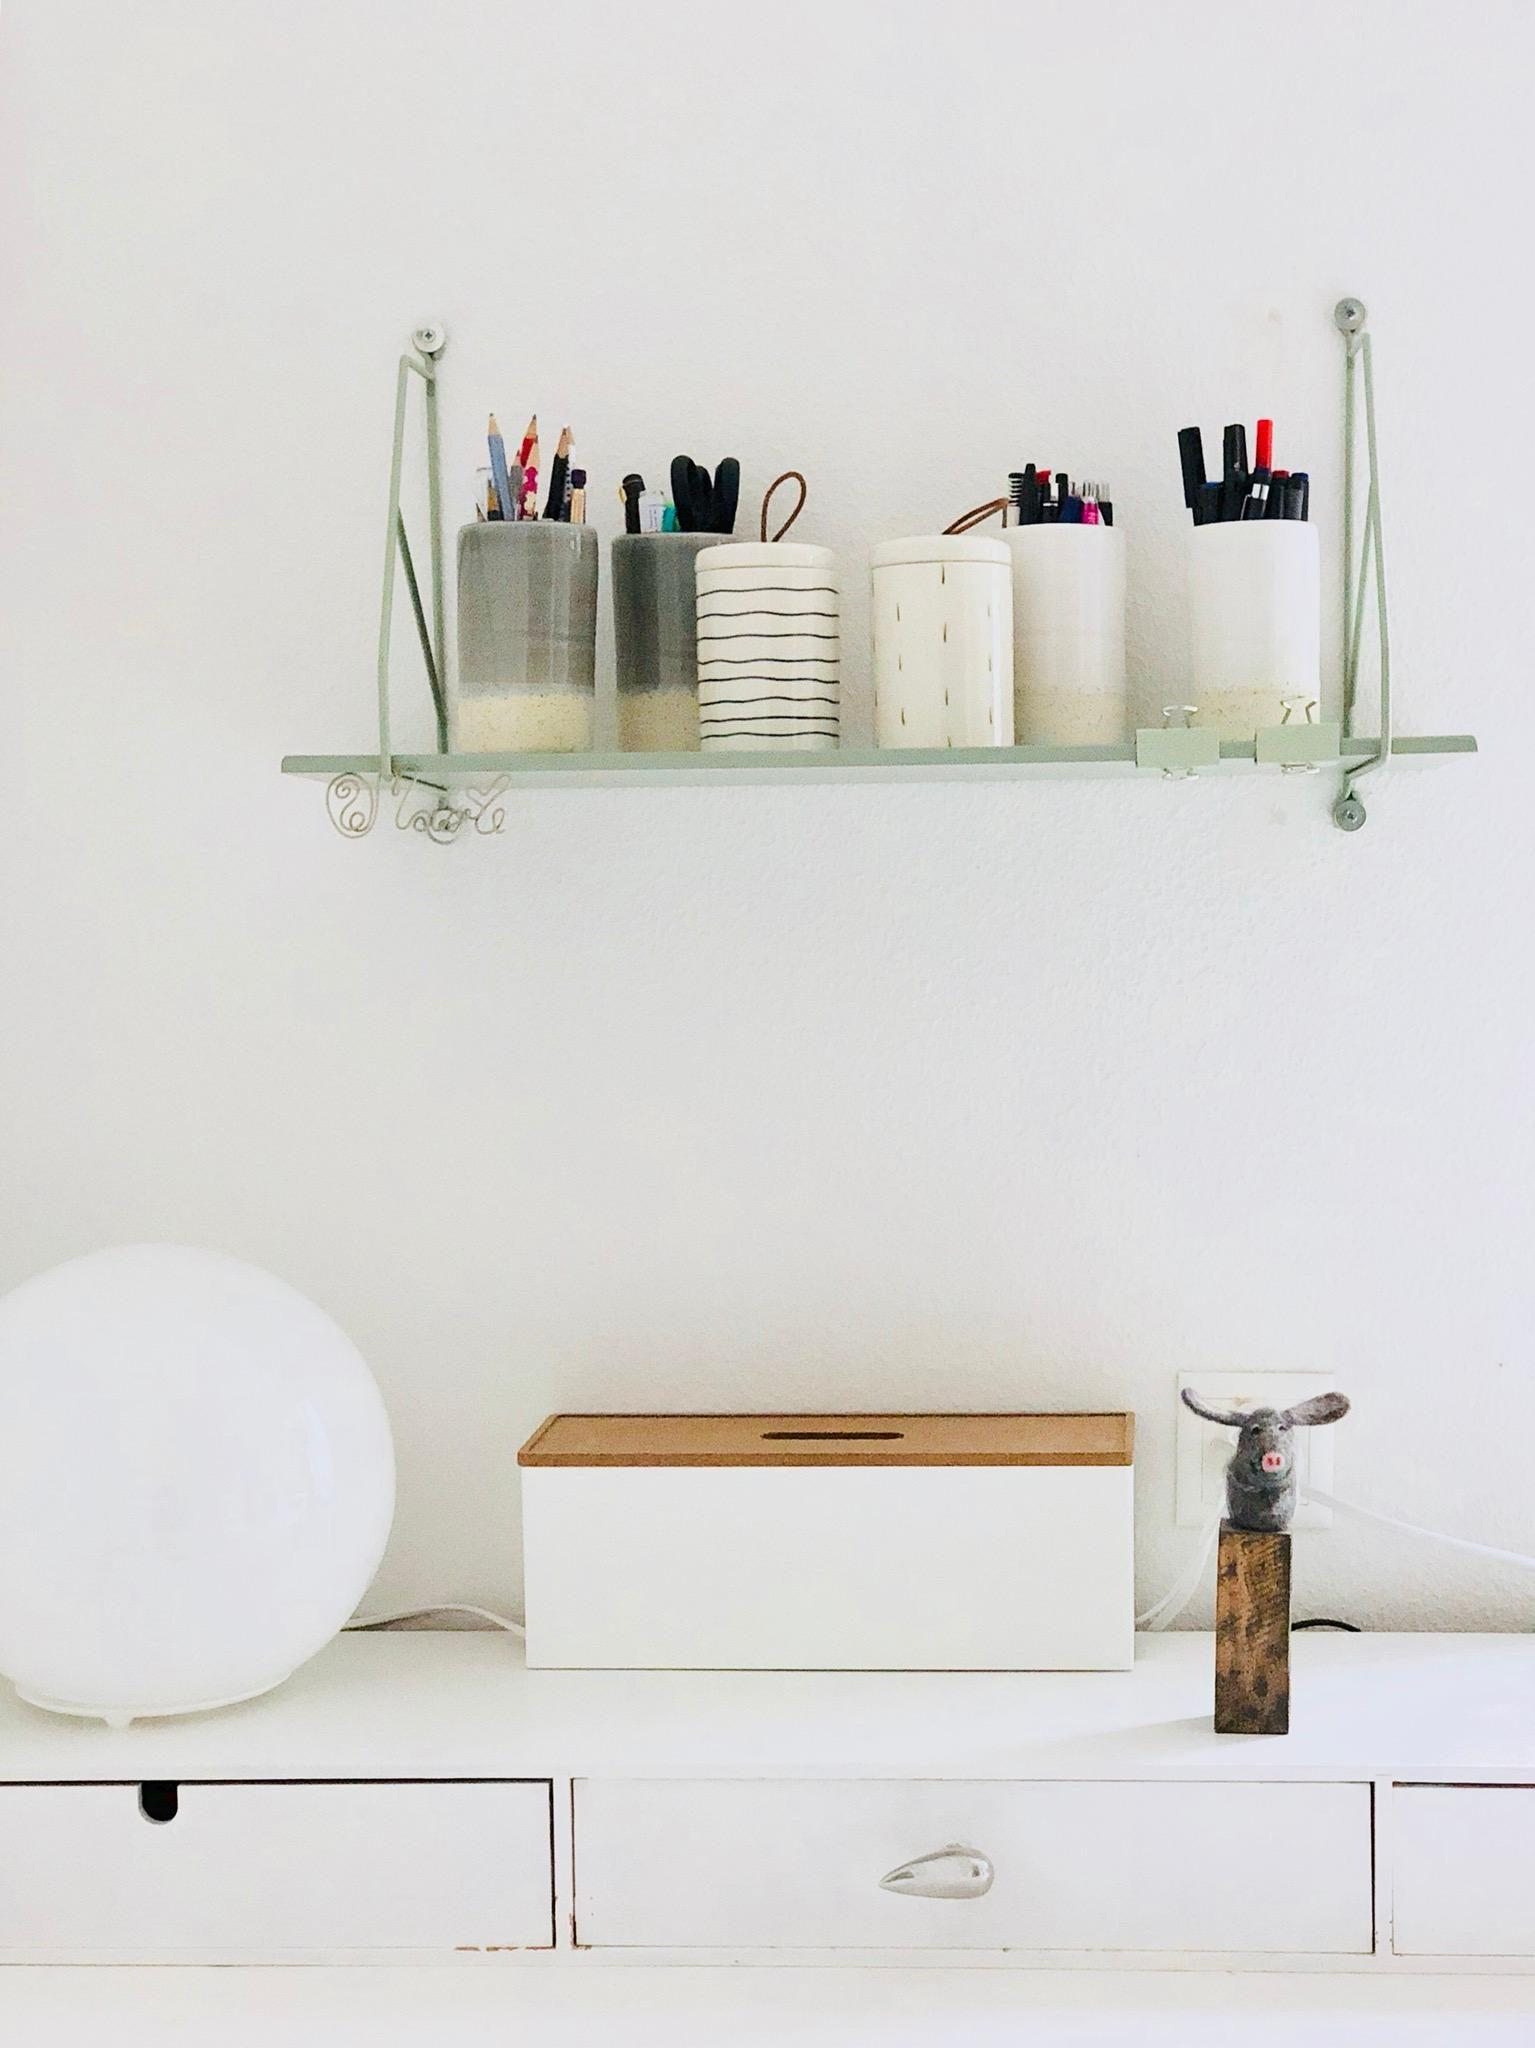 Shelfie in der Trendfarbe Salbei #shelf #homeoffice #working #salbei #interior #scandinavianstyle #whiteliving